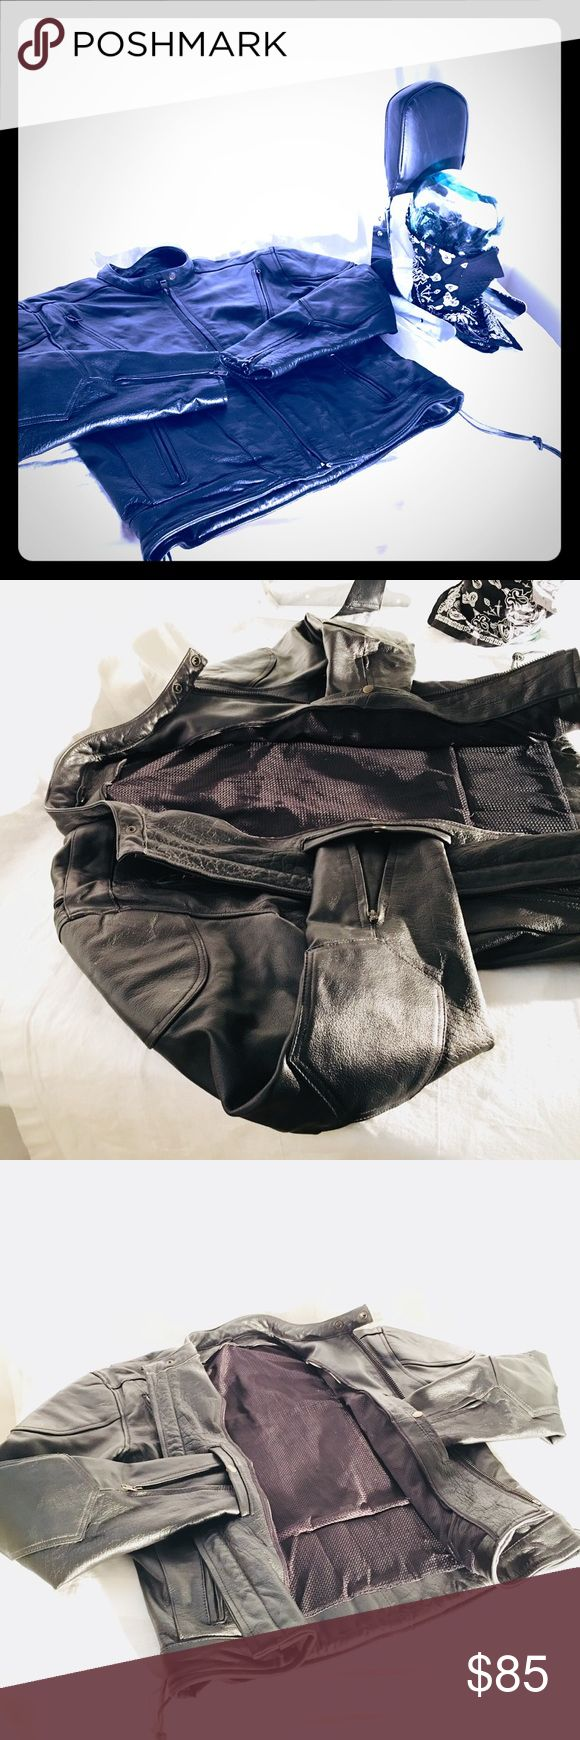 Men's Black Leather Moto Jacket Black ALL Leather Moto Jacket Size XL has zip up wrists, chest and back vented zips (4total), and low back leather lace up detail.  Jacket is like new and pricing on listing is for Jacket Only @ $85.   The staged photos feature a motorcycle  extension for a Harley Davidson (Retails $500+), a pair of Paris Brand Rubber Boots (Retail $50+), and a Zane Handkerchief Moto Mask (Retail $15-$20).  Buy the lot for $150.00.  Resell the other items and make money :)…